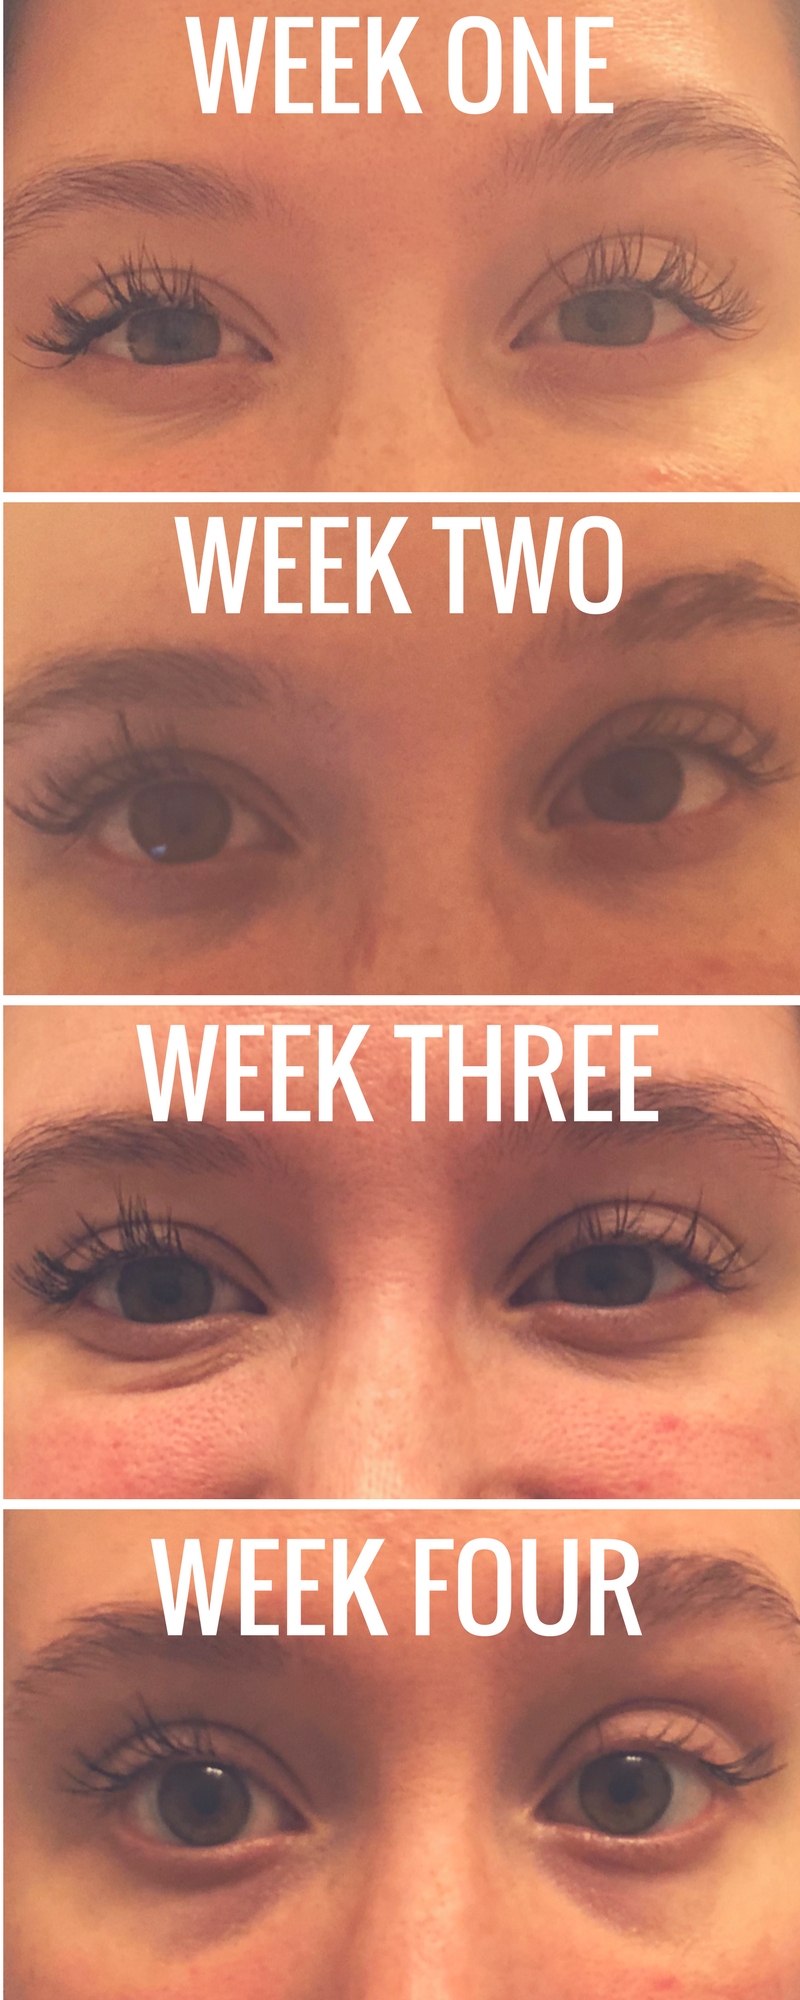 LASH EXTENSIONS WEEK BY WEEK